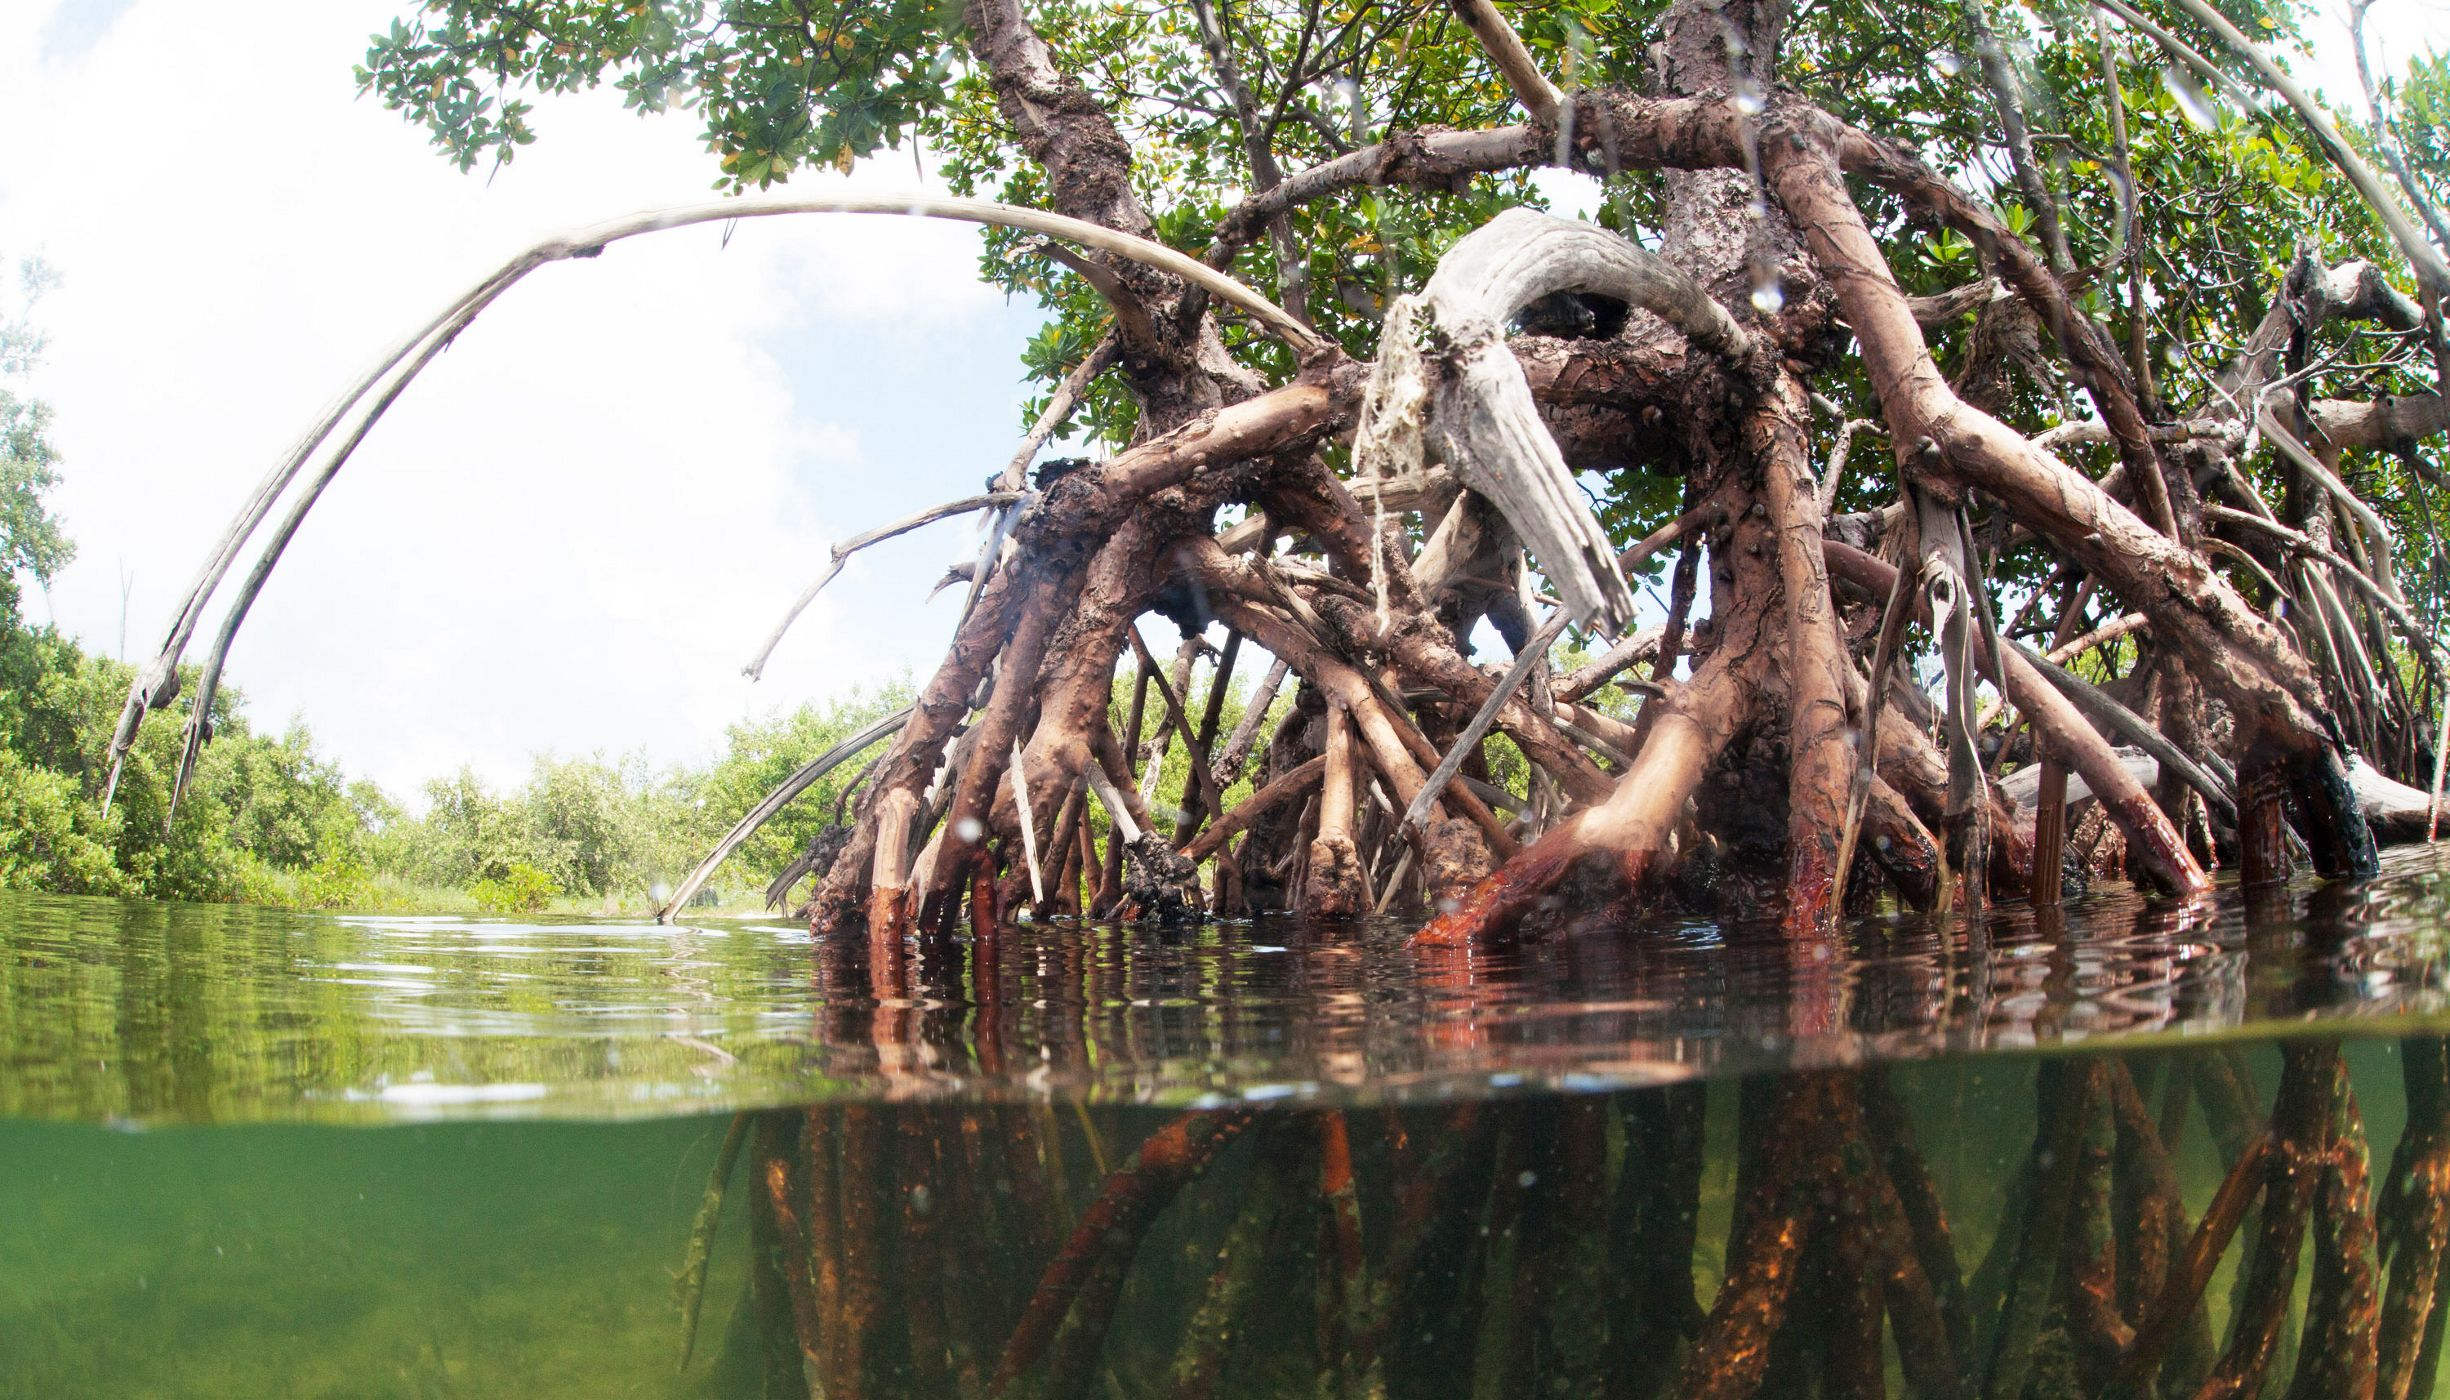 Close up view of mangrove roots.